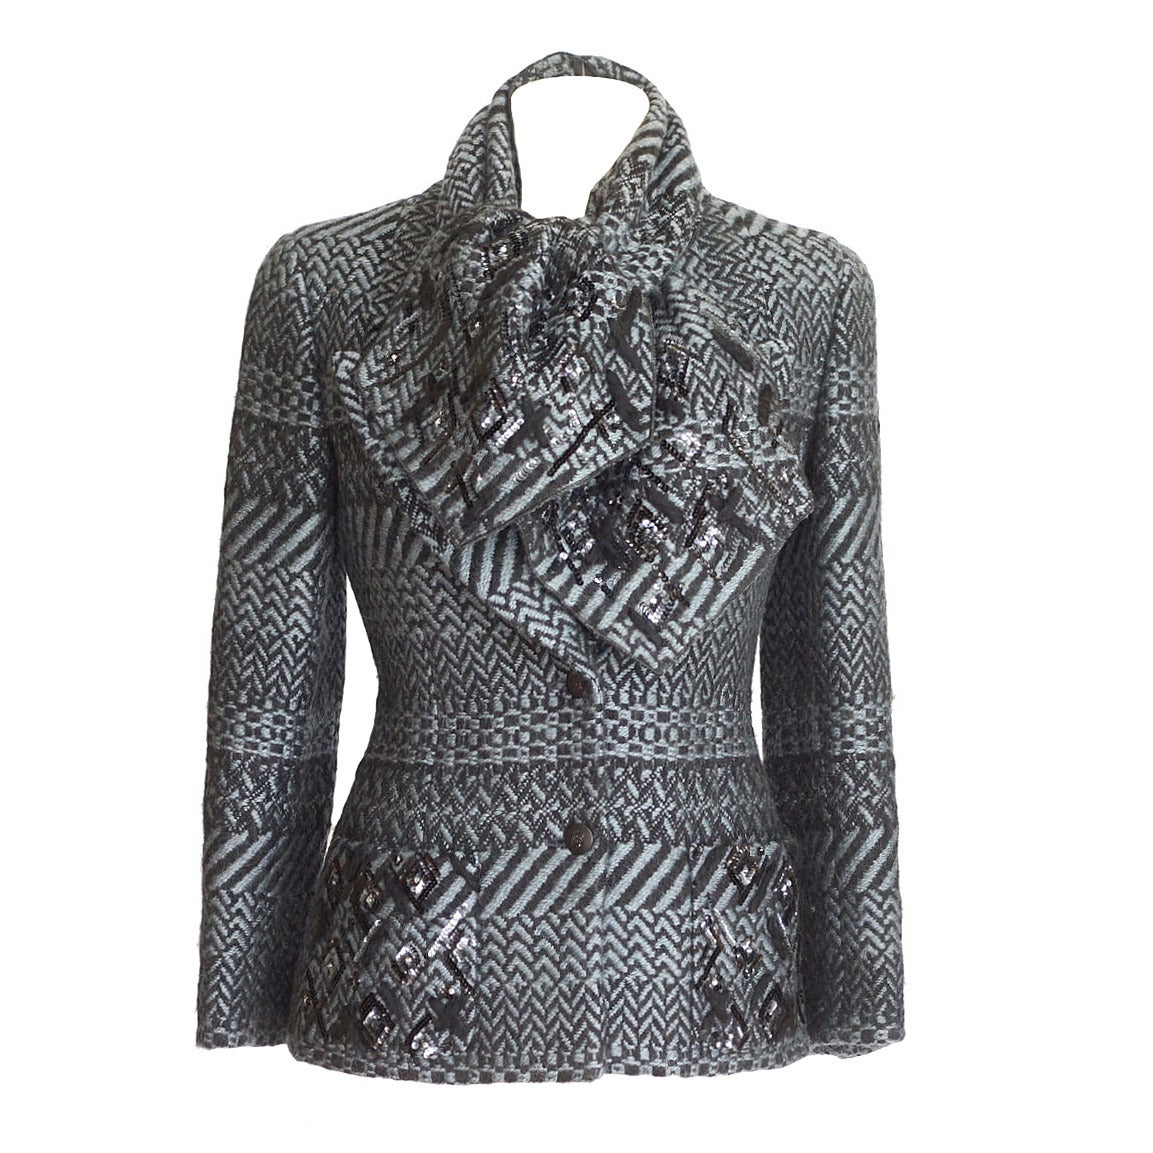 CHANEL 00A jacket black/gray tweed scarf sequin dtl  38  4 For Sale